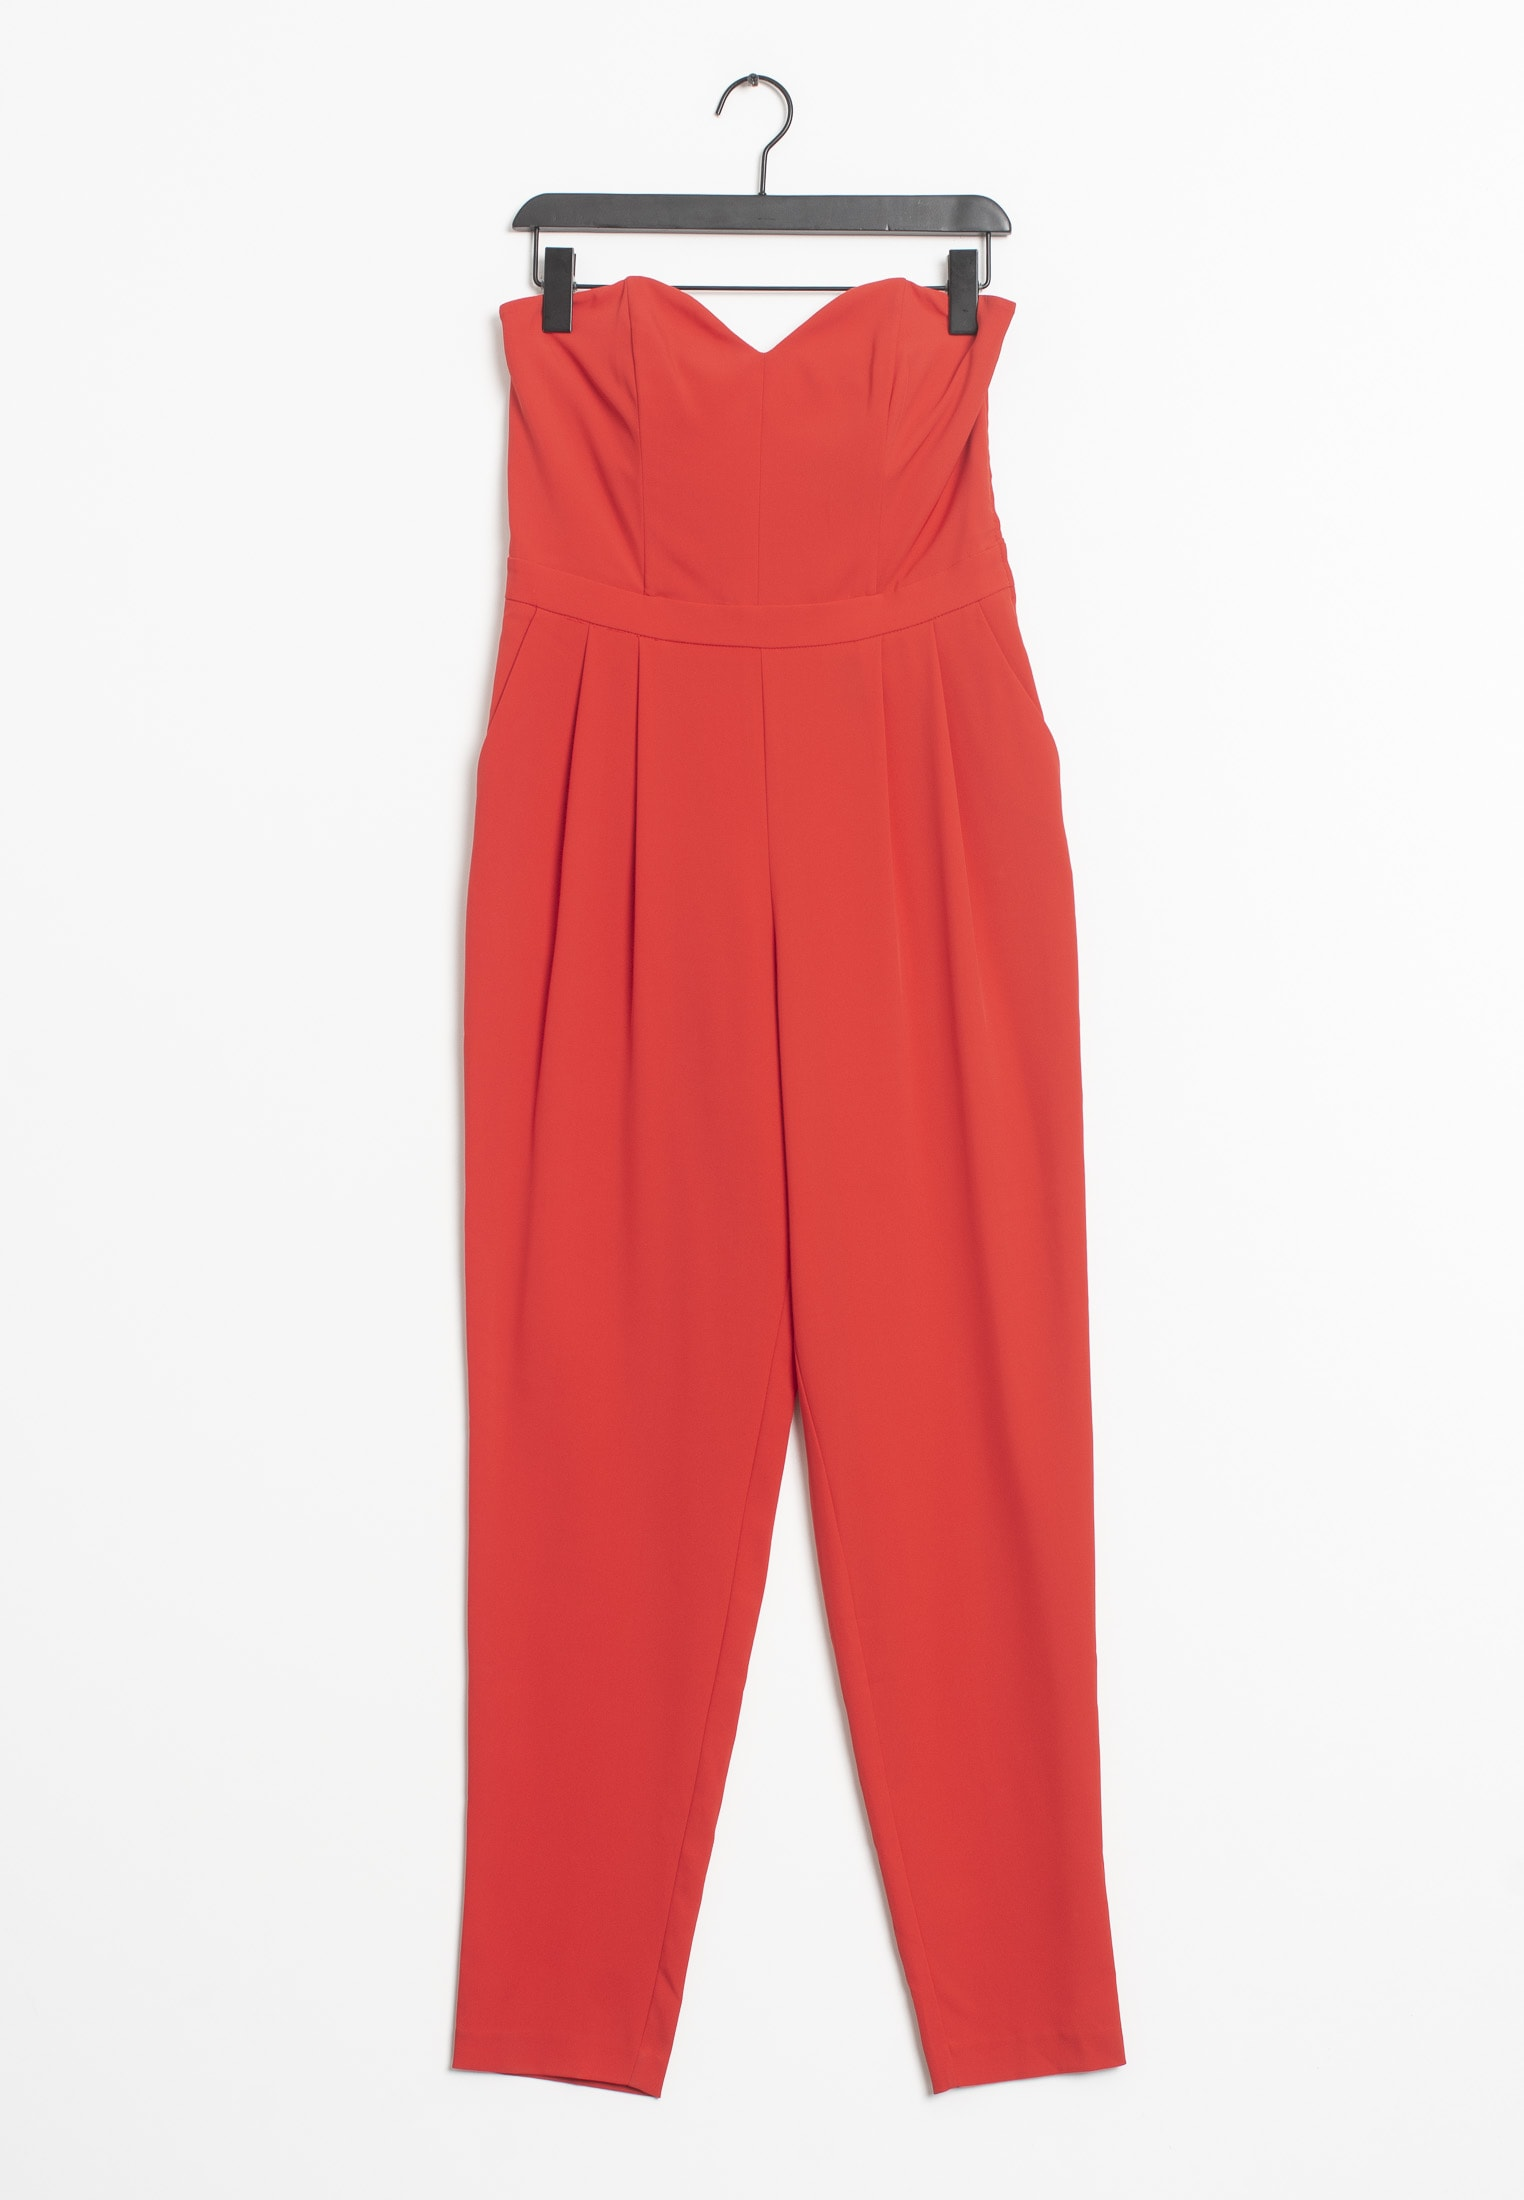 H&M Jumpsuit / Overall Rot Gr.38